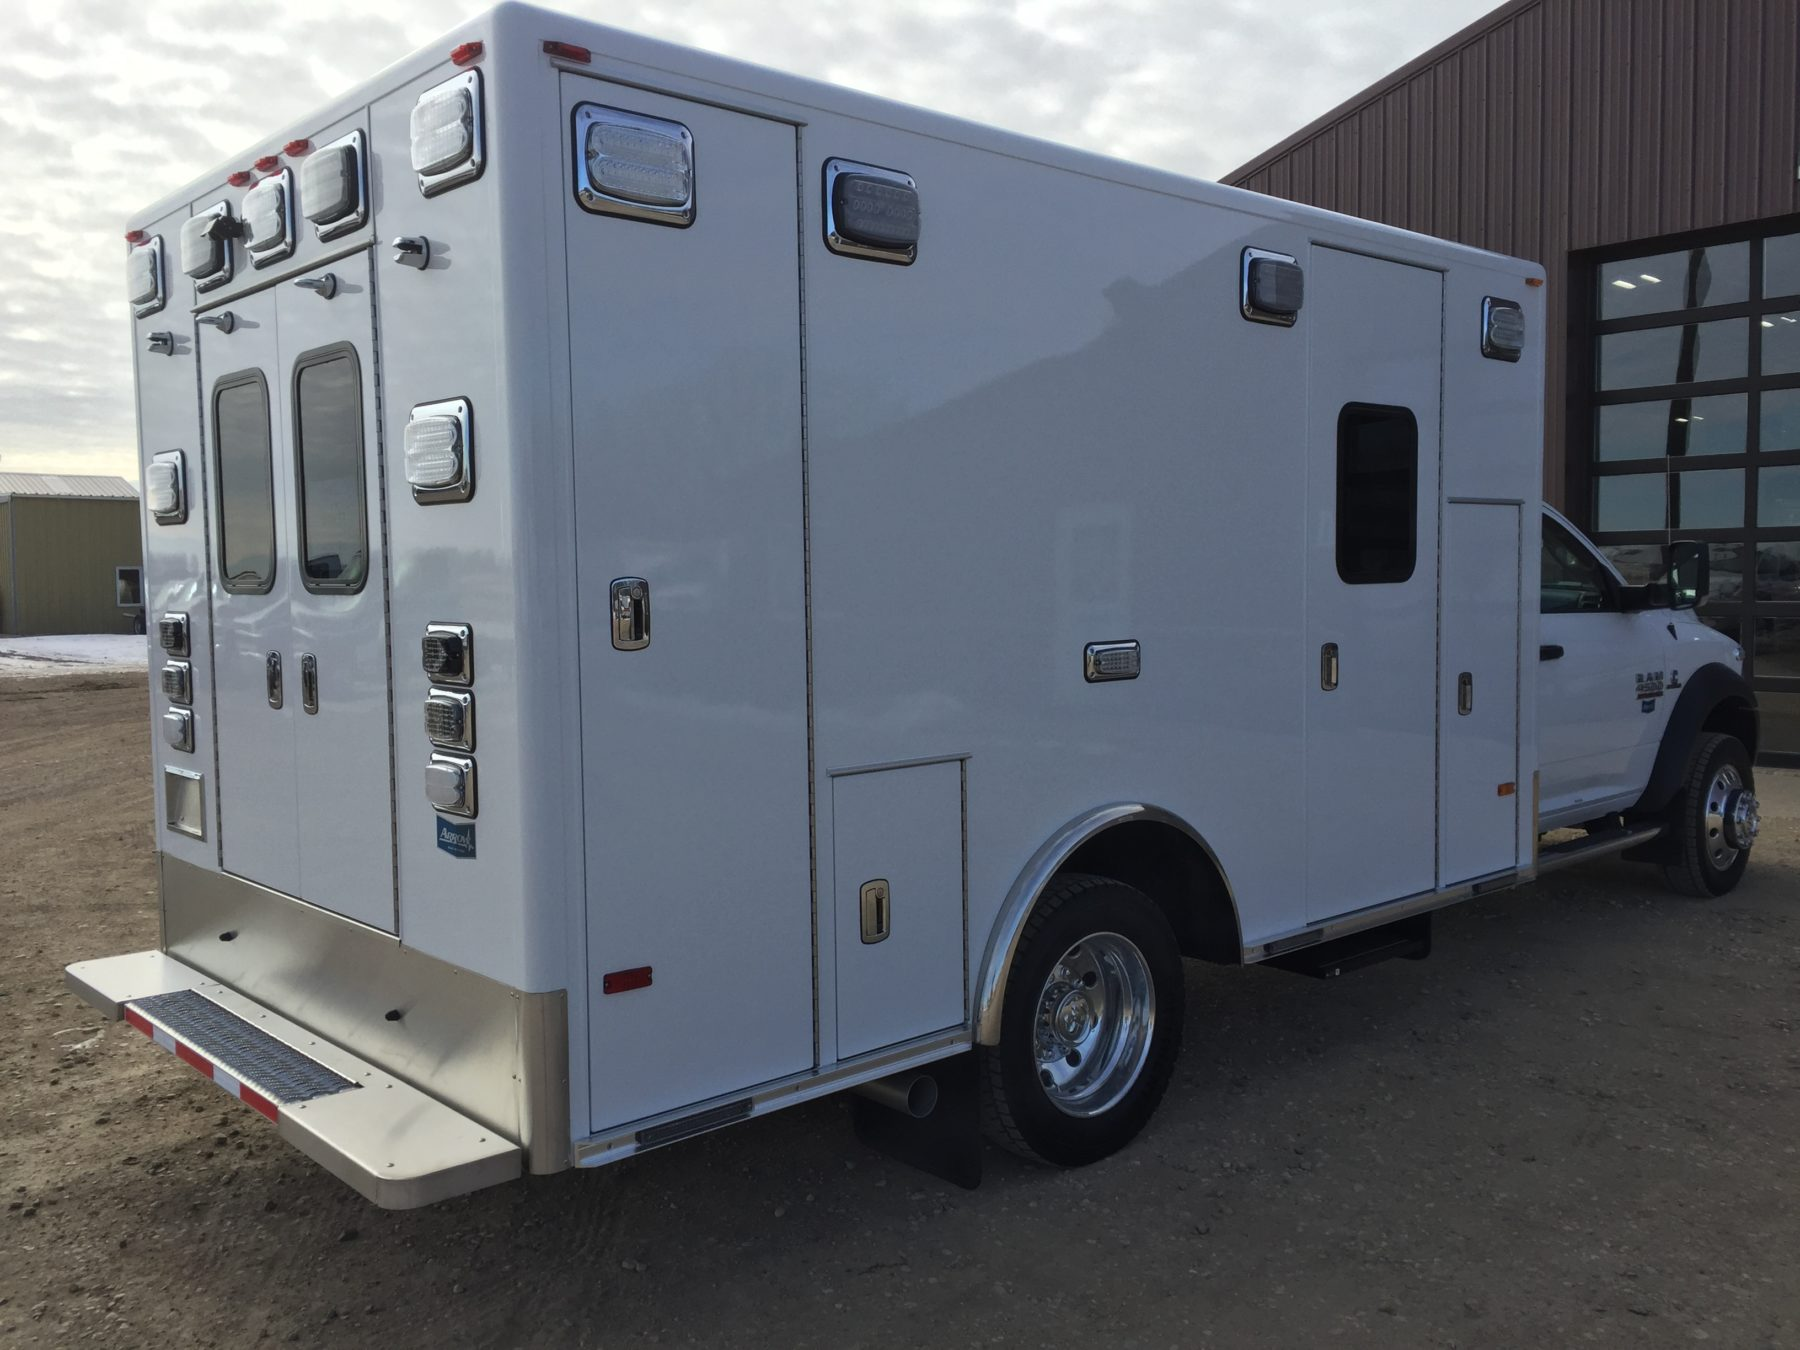 2017 Ram 4500 4x4 Heavy Duty Ambulance For Sale – Picture 11